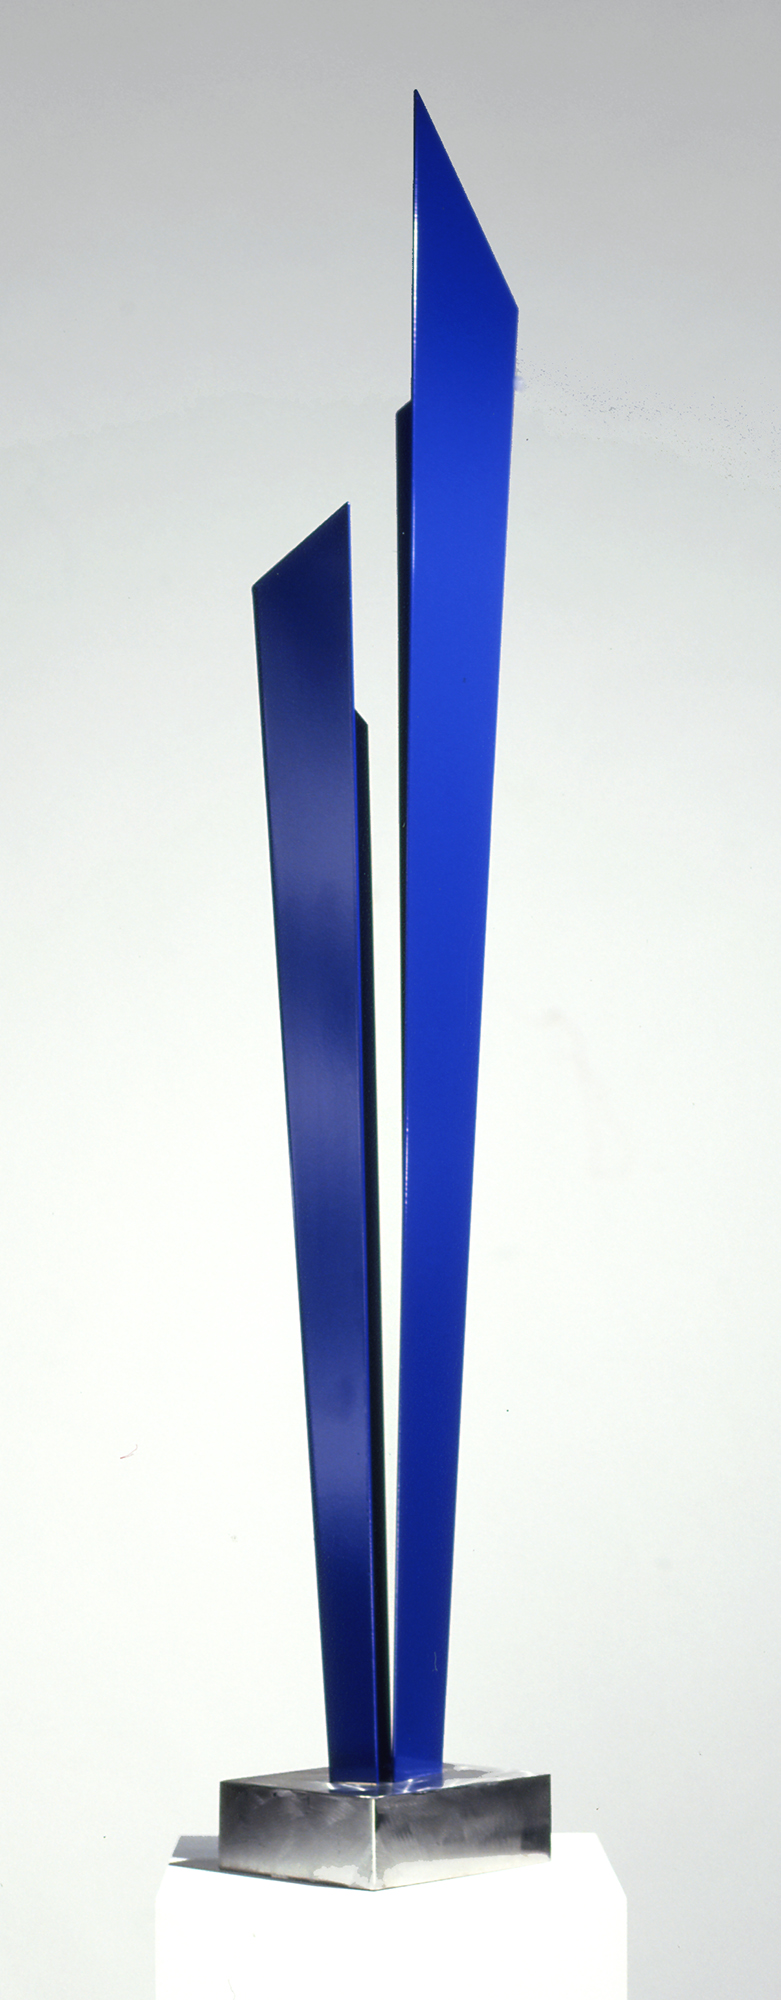 Blue Tall - stainless steel - powdered coated